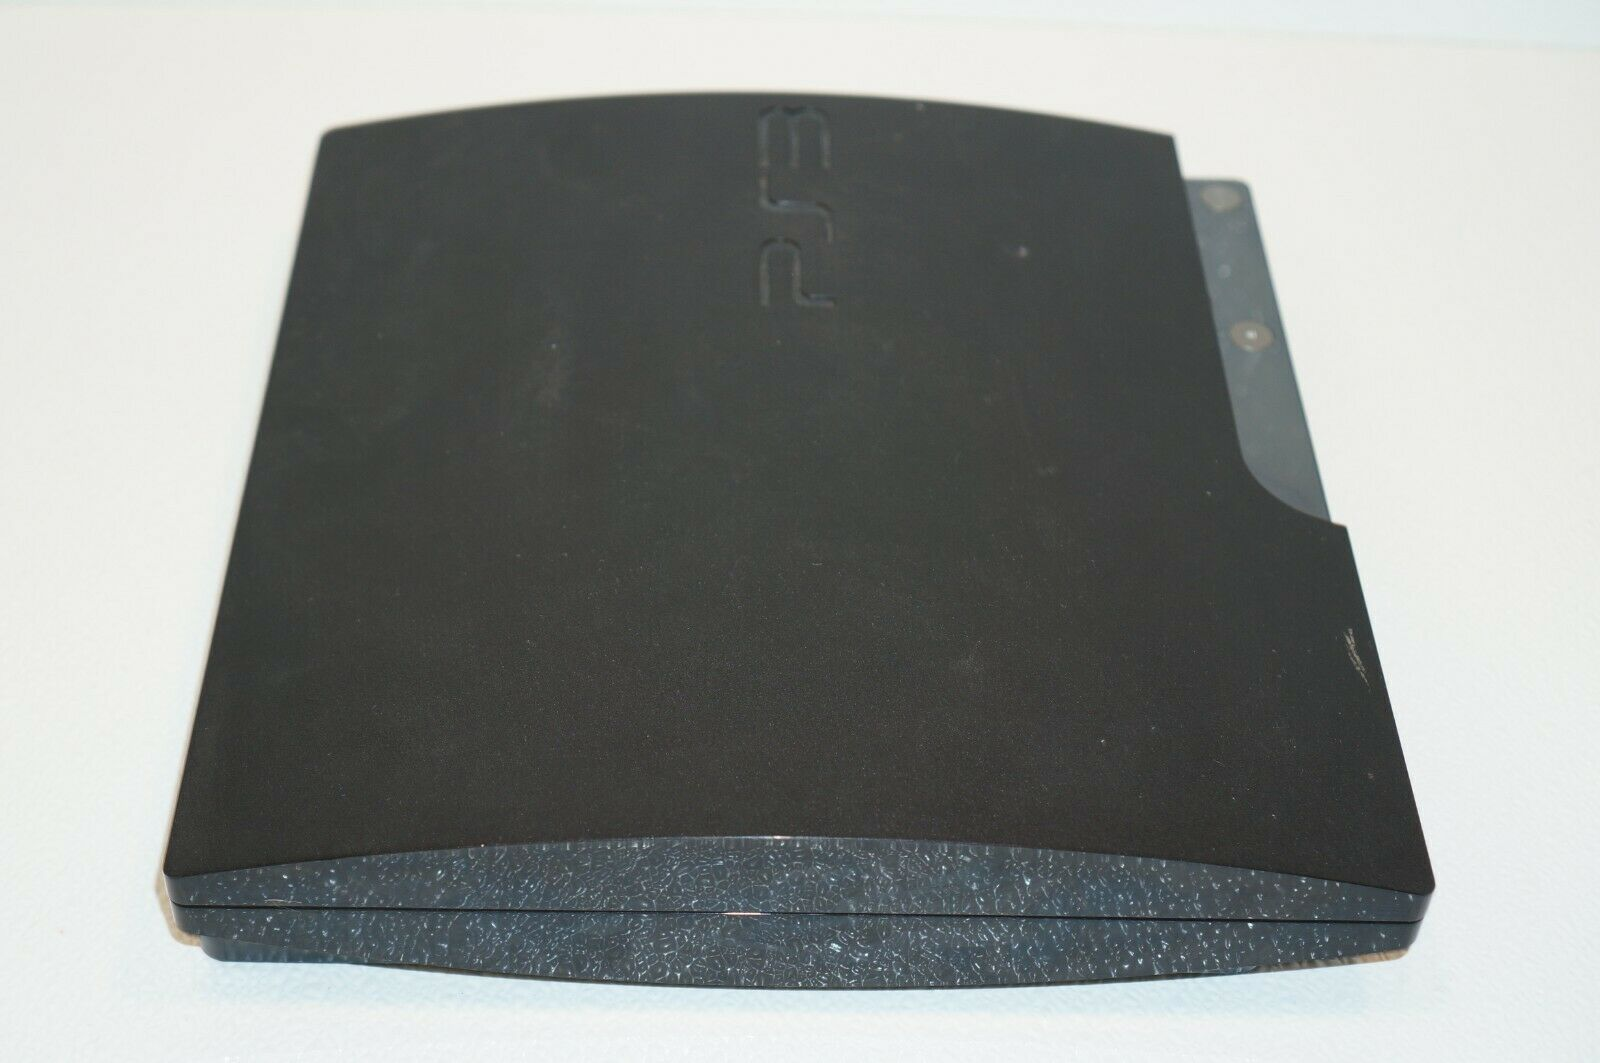 Playstation 3 PS3 CECH-2001b Console Only Parts / Repair Power But No Video Out